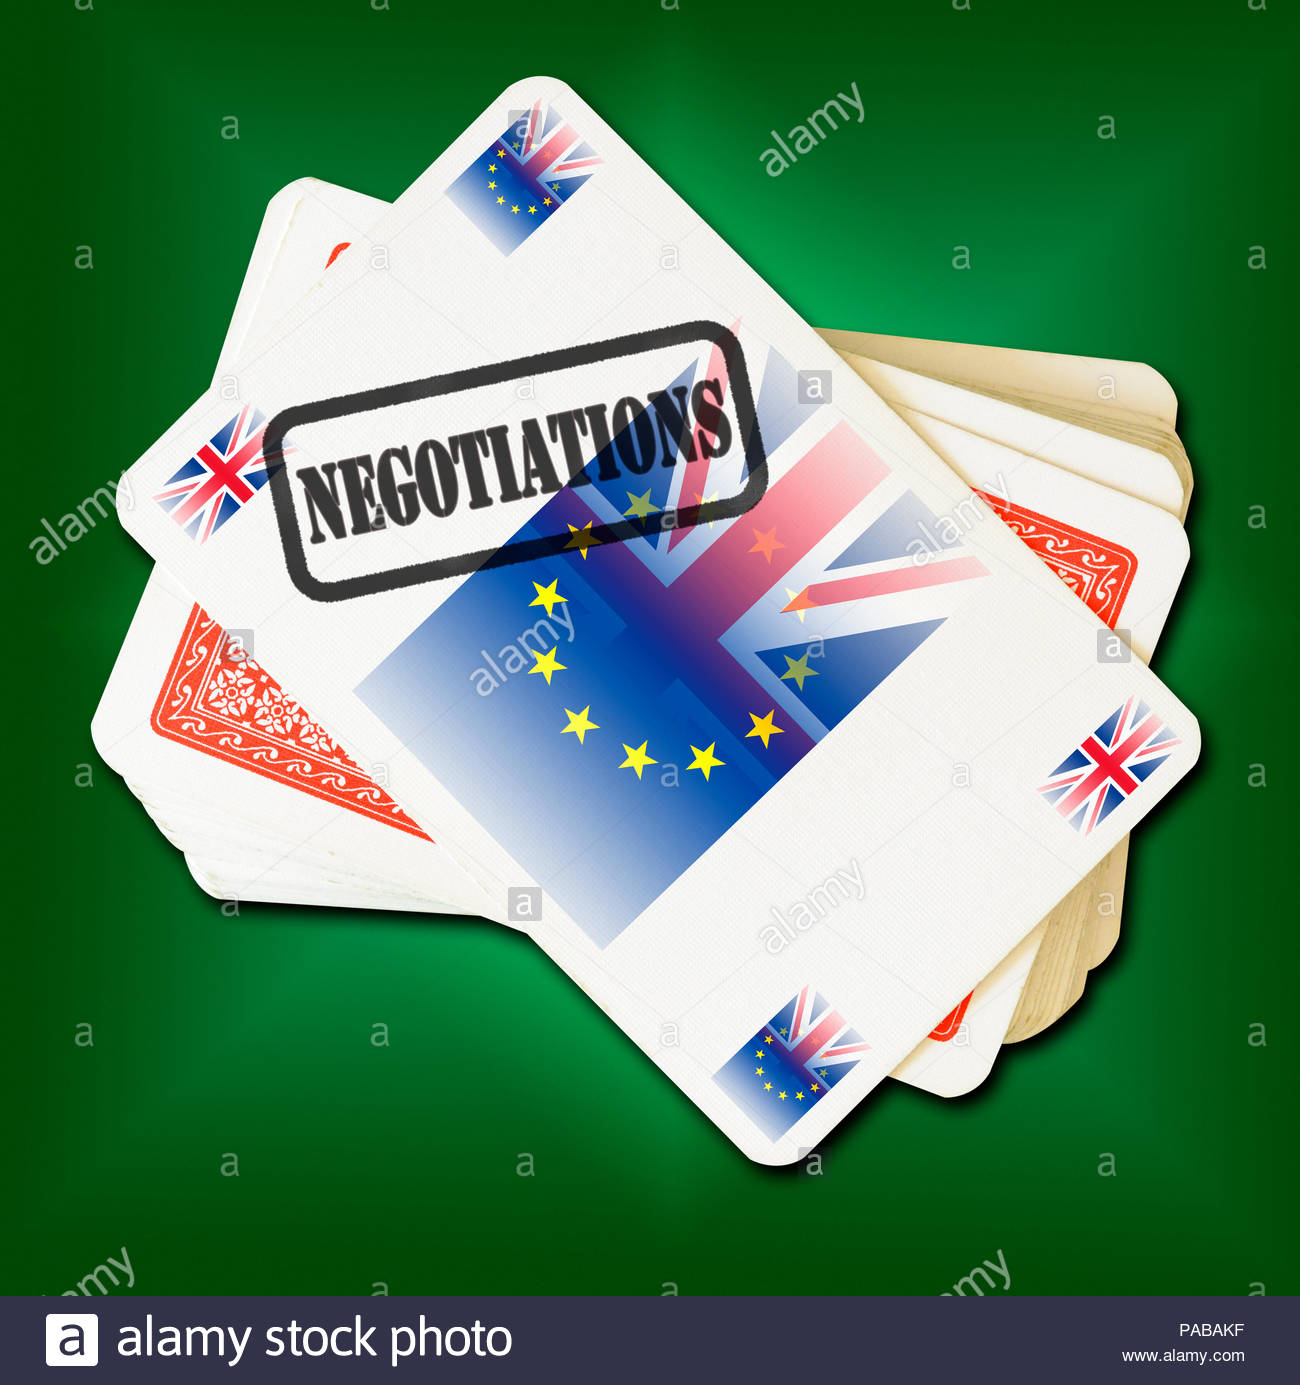 Brexit Negotiations on playing card, Dorset, England, Britain, UK Stock Photo